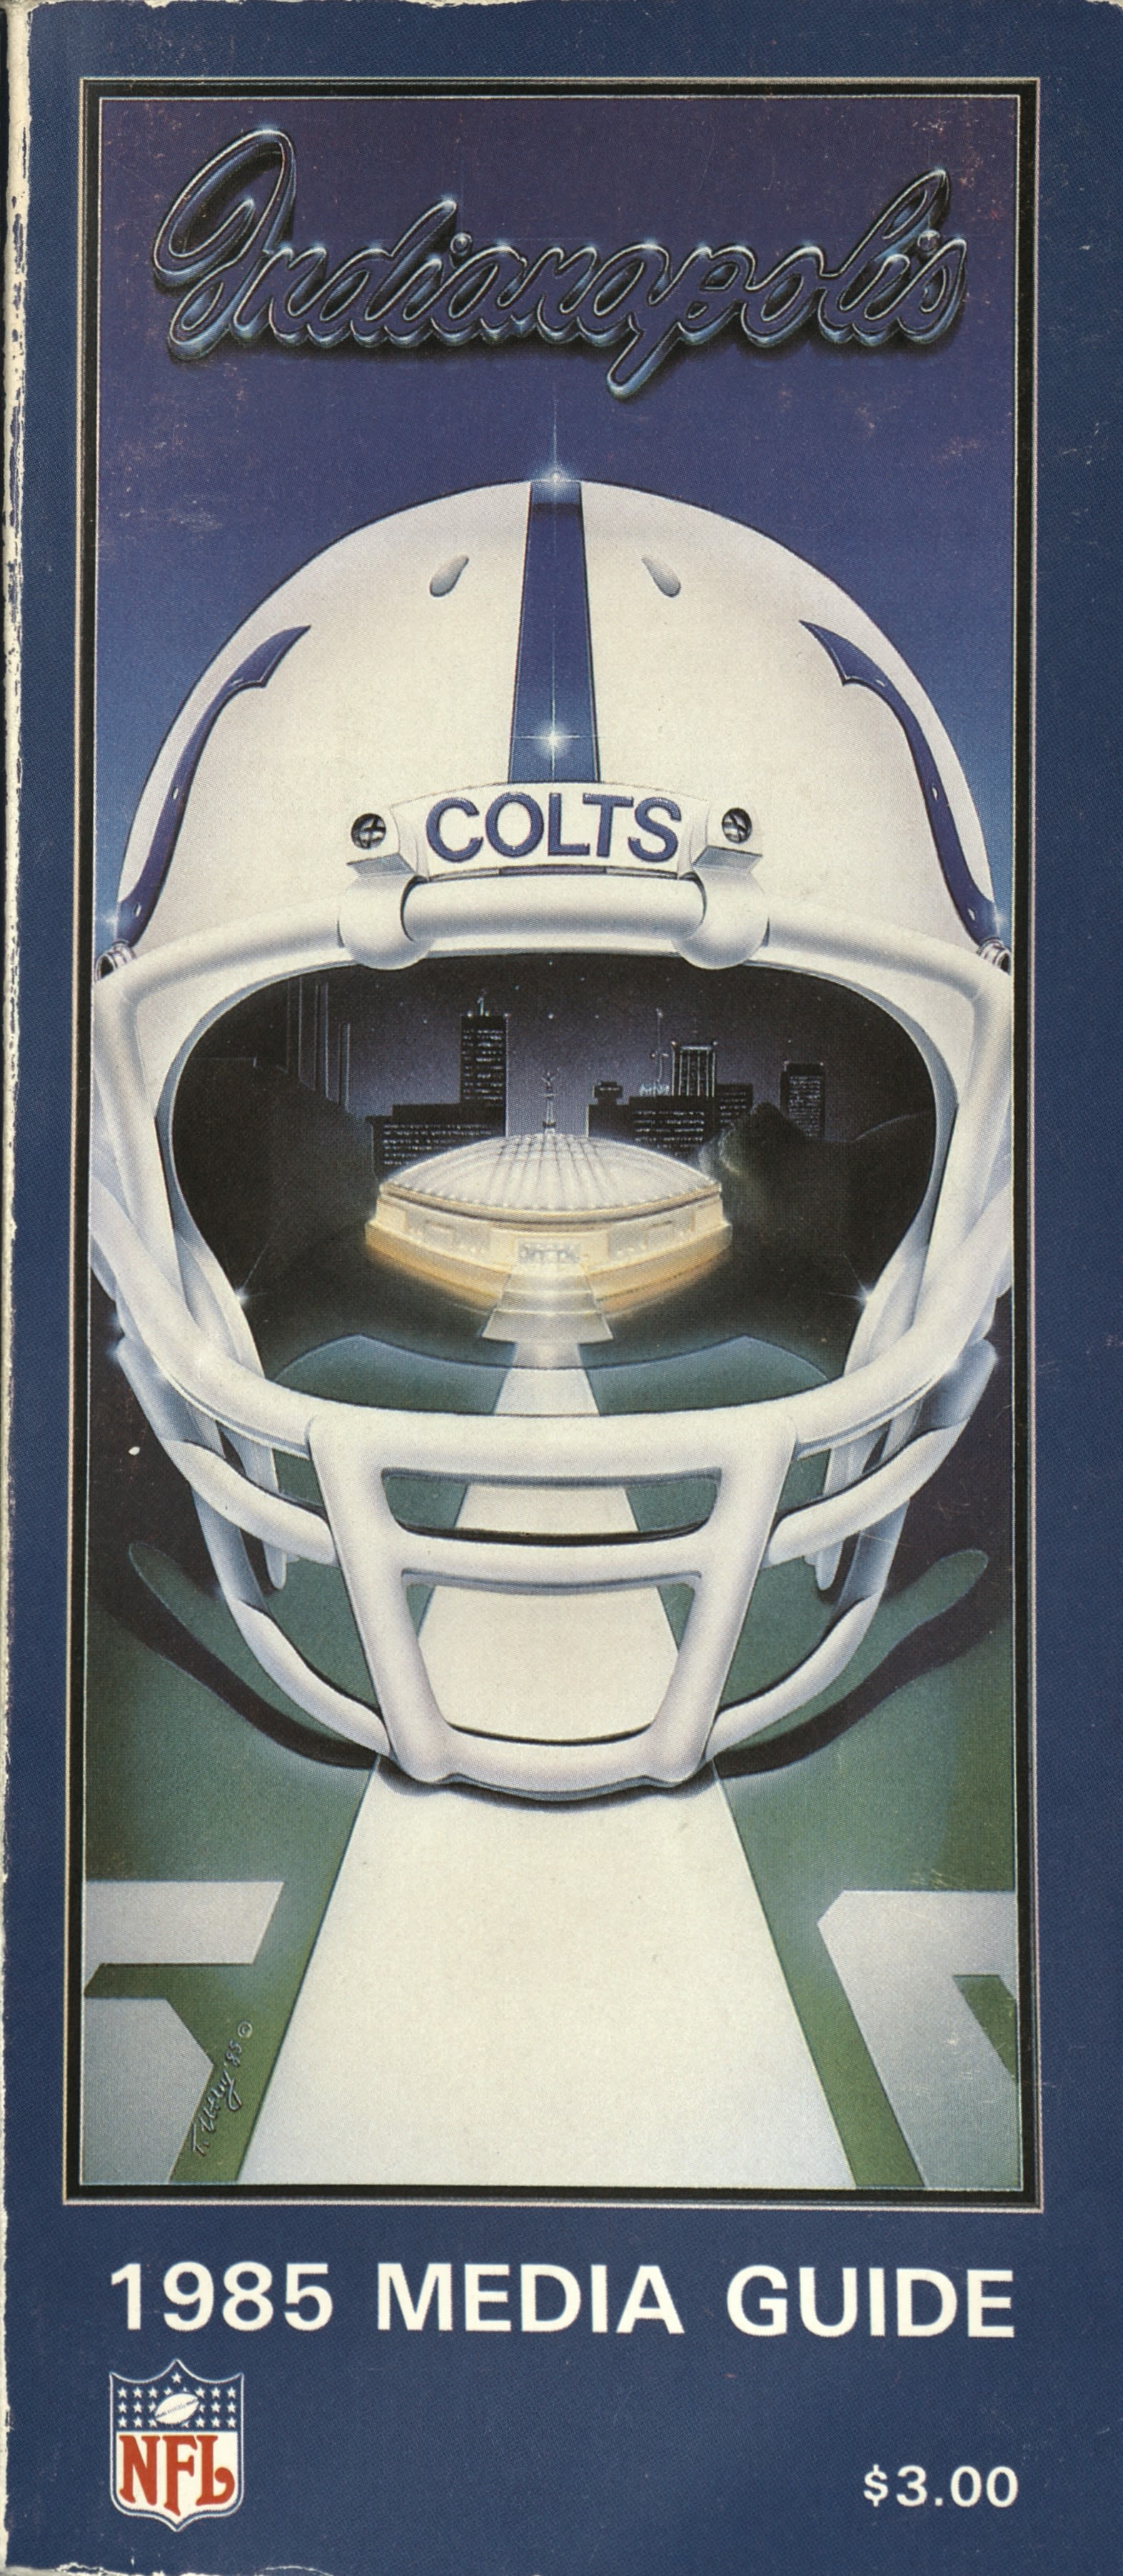 COLTS_1985_Cover